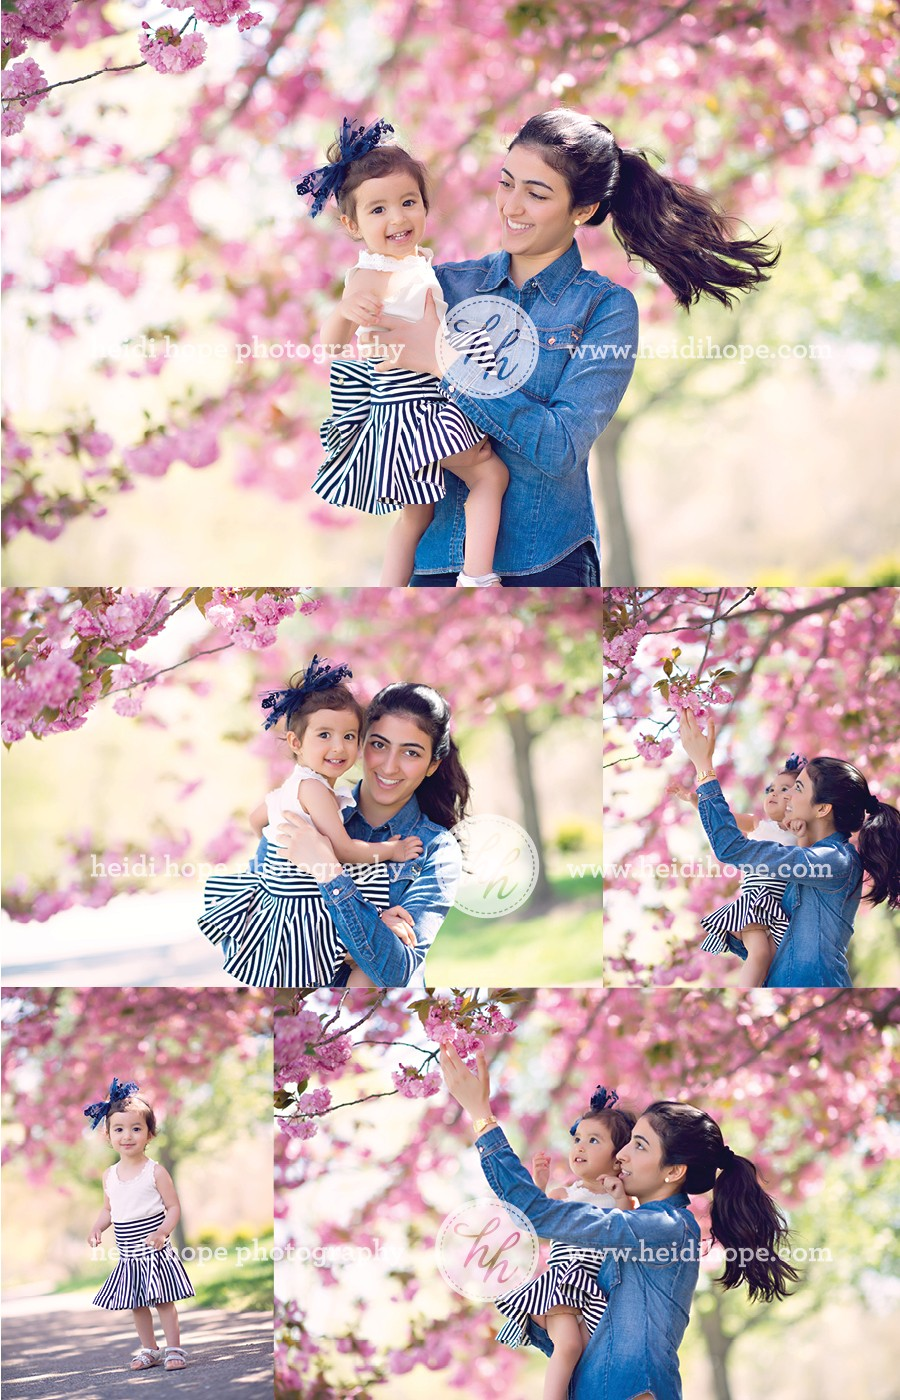 om and daughter in blooming spring flowers by Heidi Hope Photography